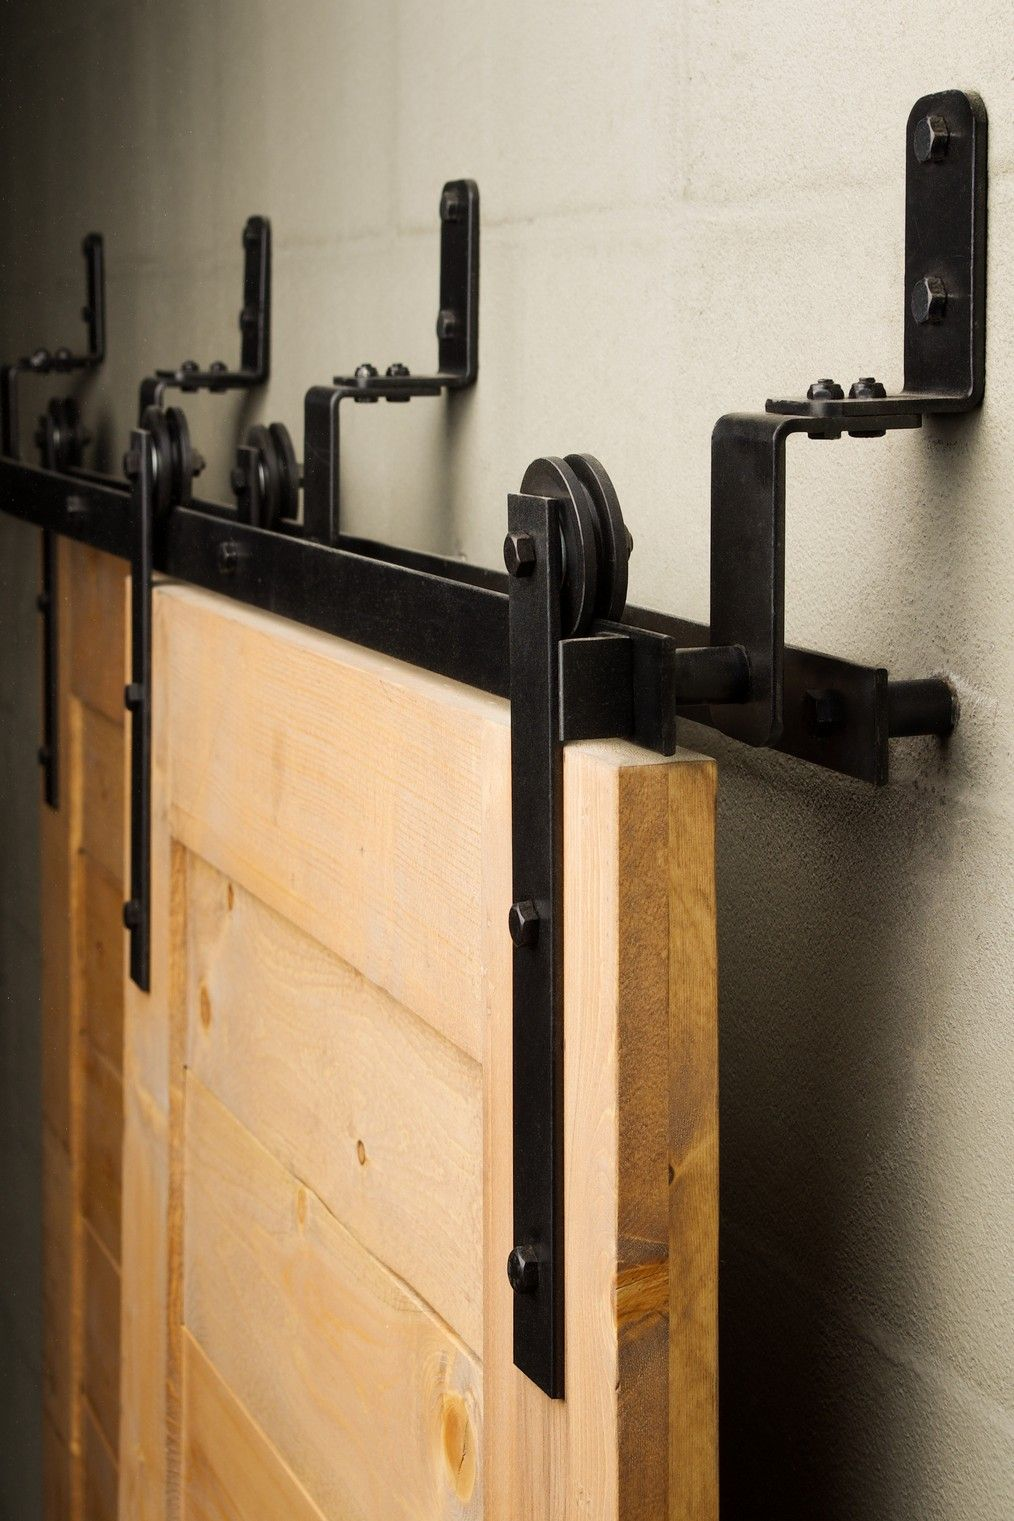 The Bypass Sliding Barn Door Hardware Is Efficient In Tight Spaces Offering A Low Profile